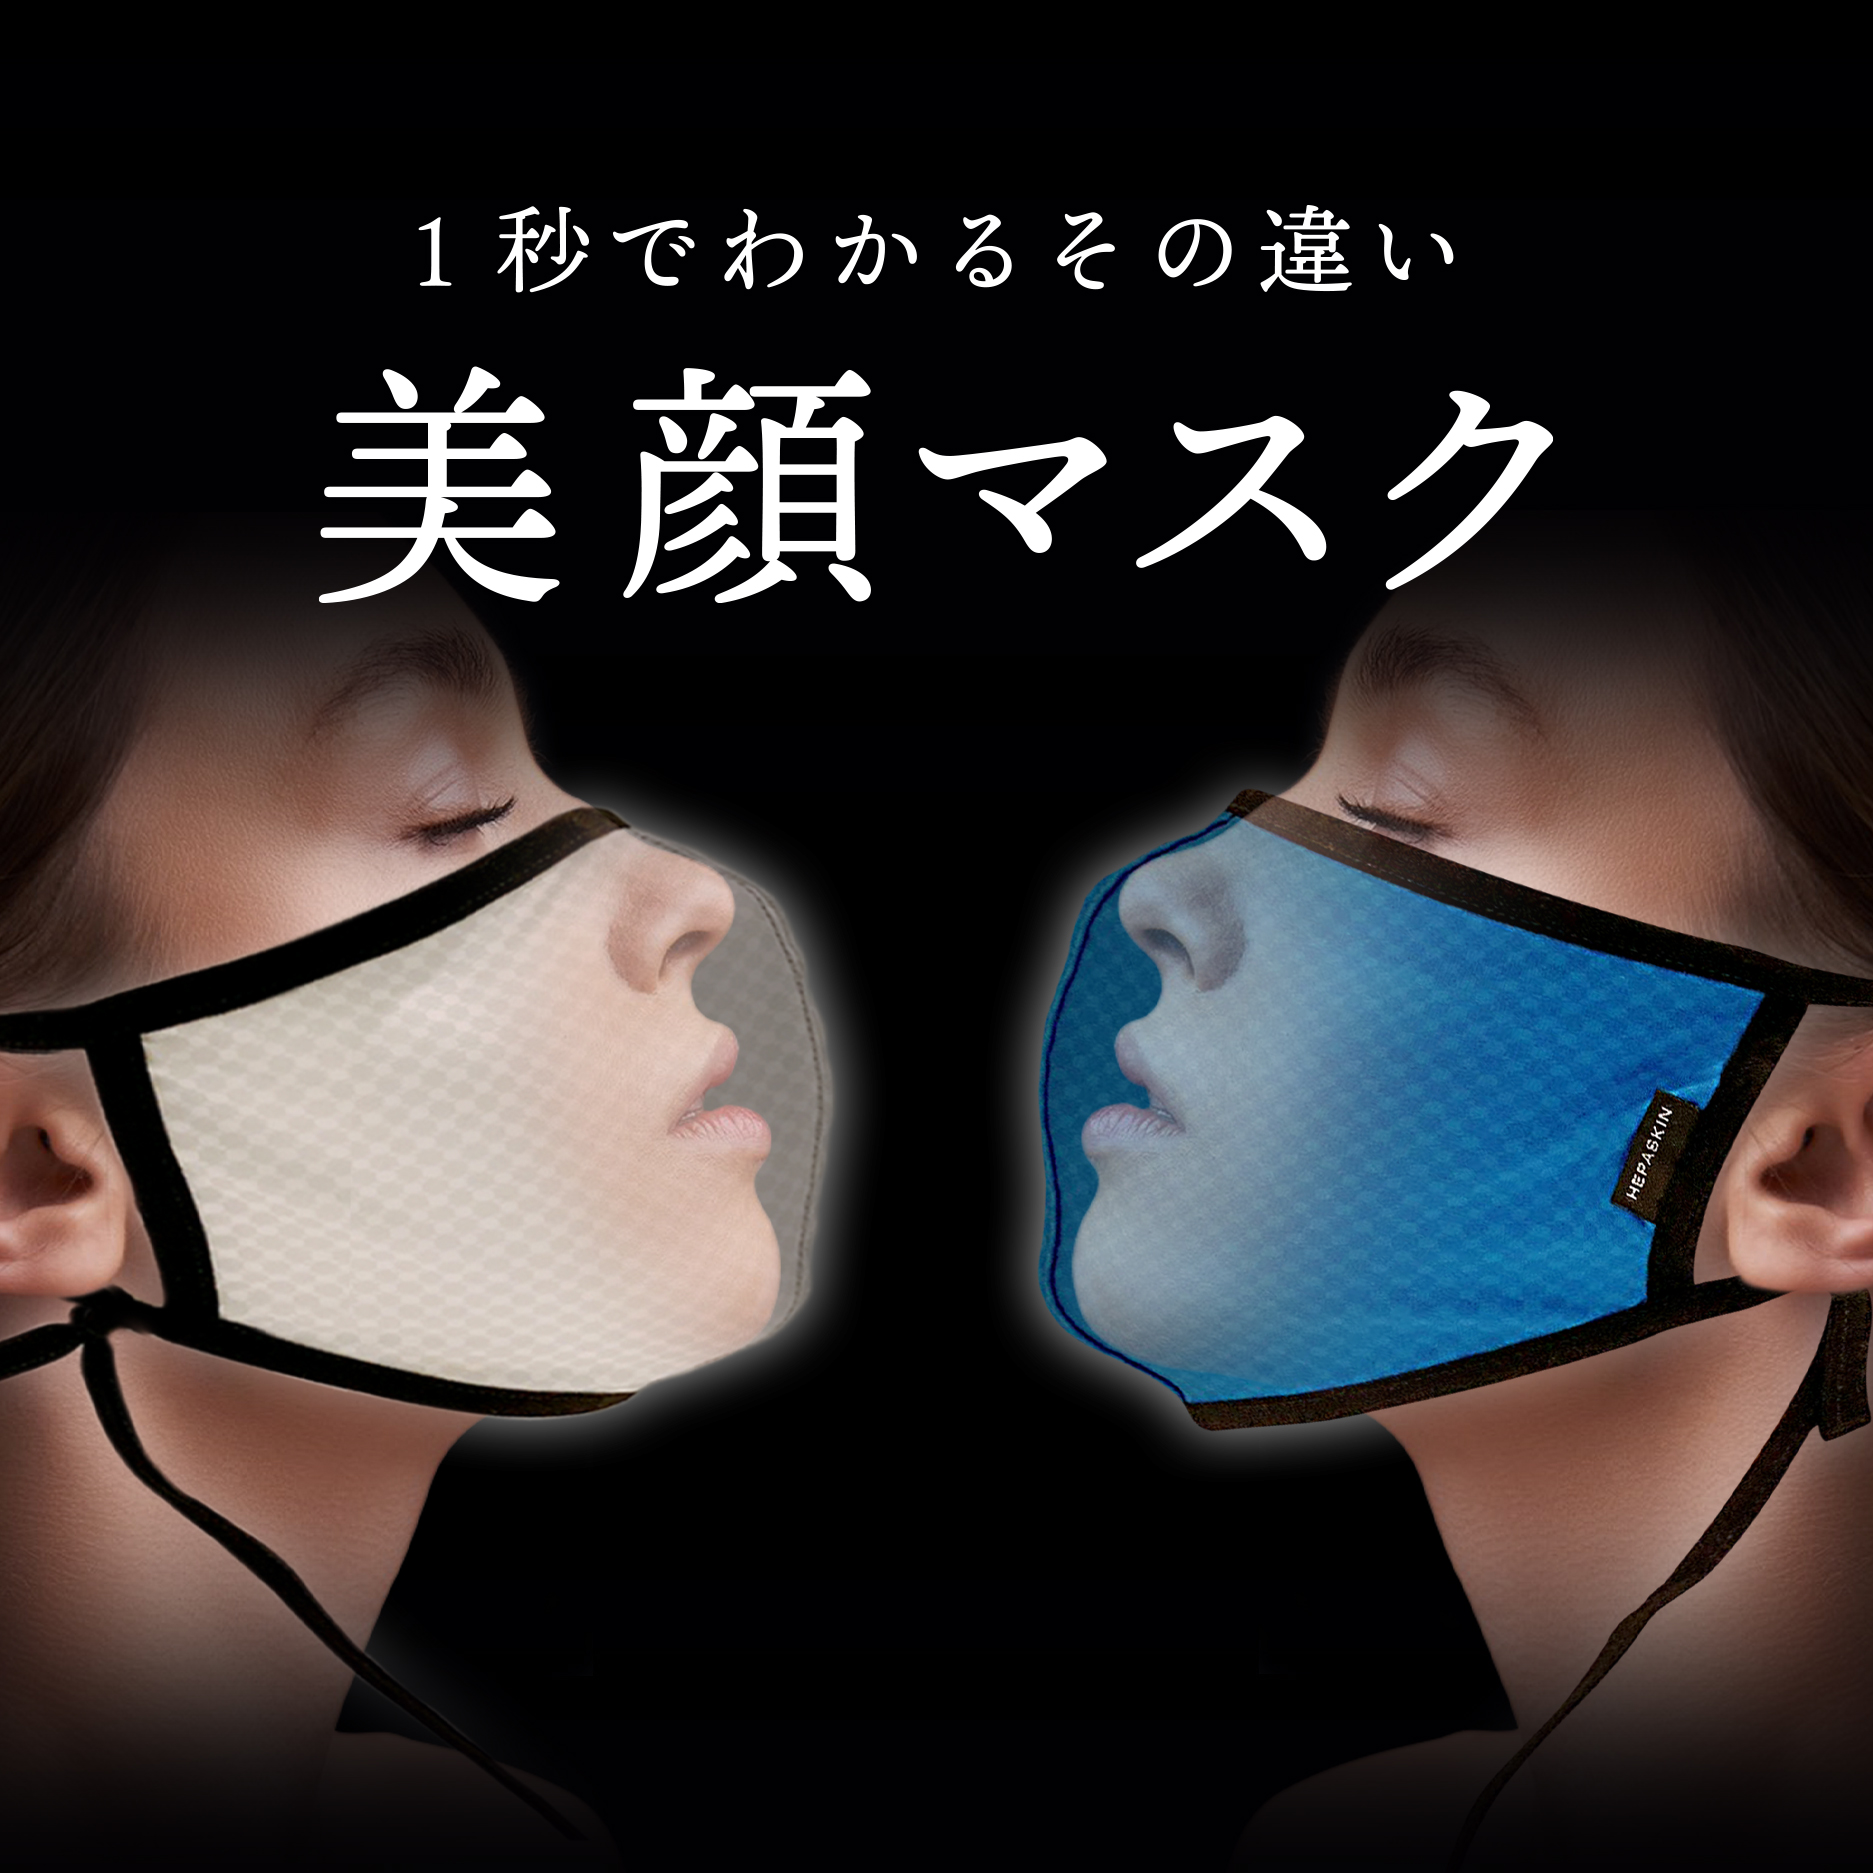 HEPASKIN 4D Stretch Cool Mask ヘパスキン 4D ストレッチクールマスク